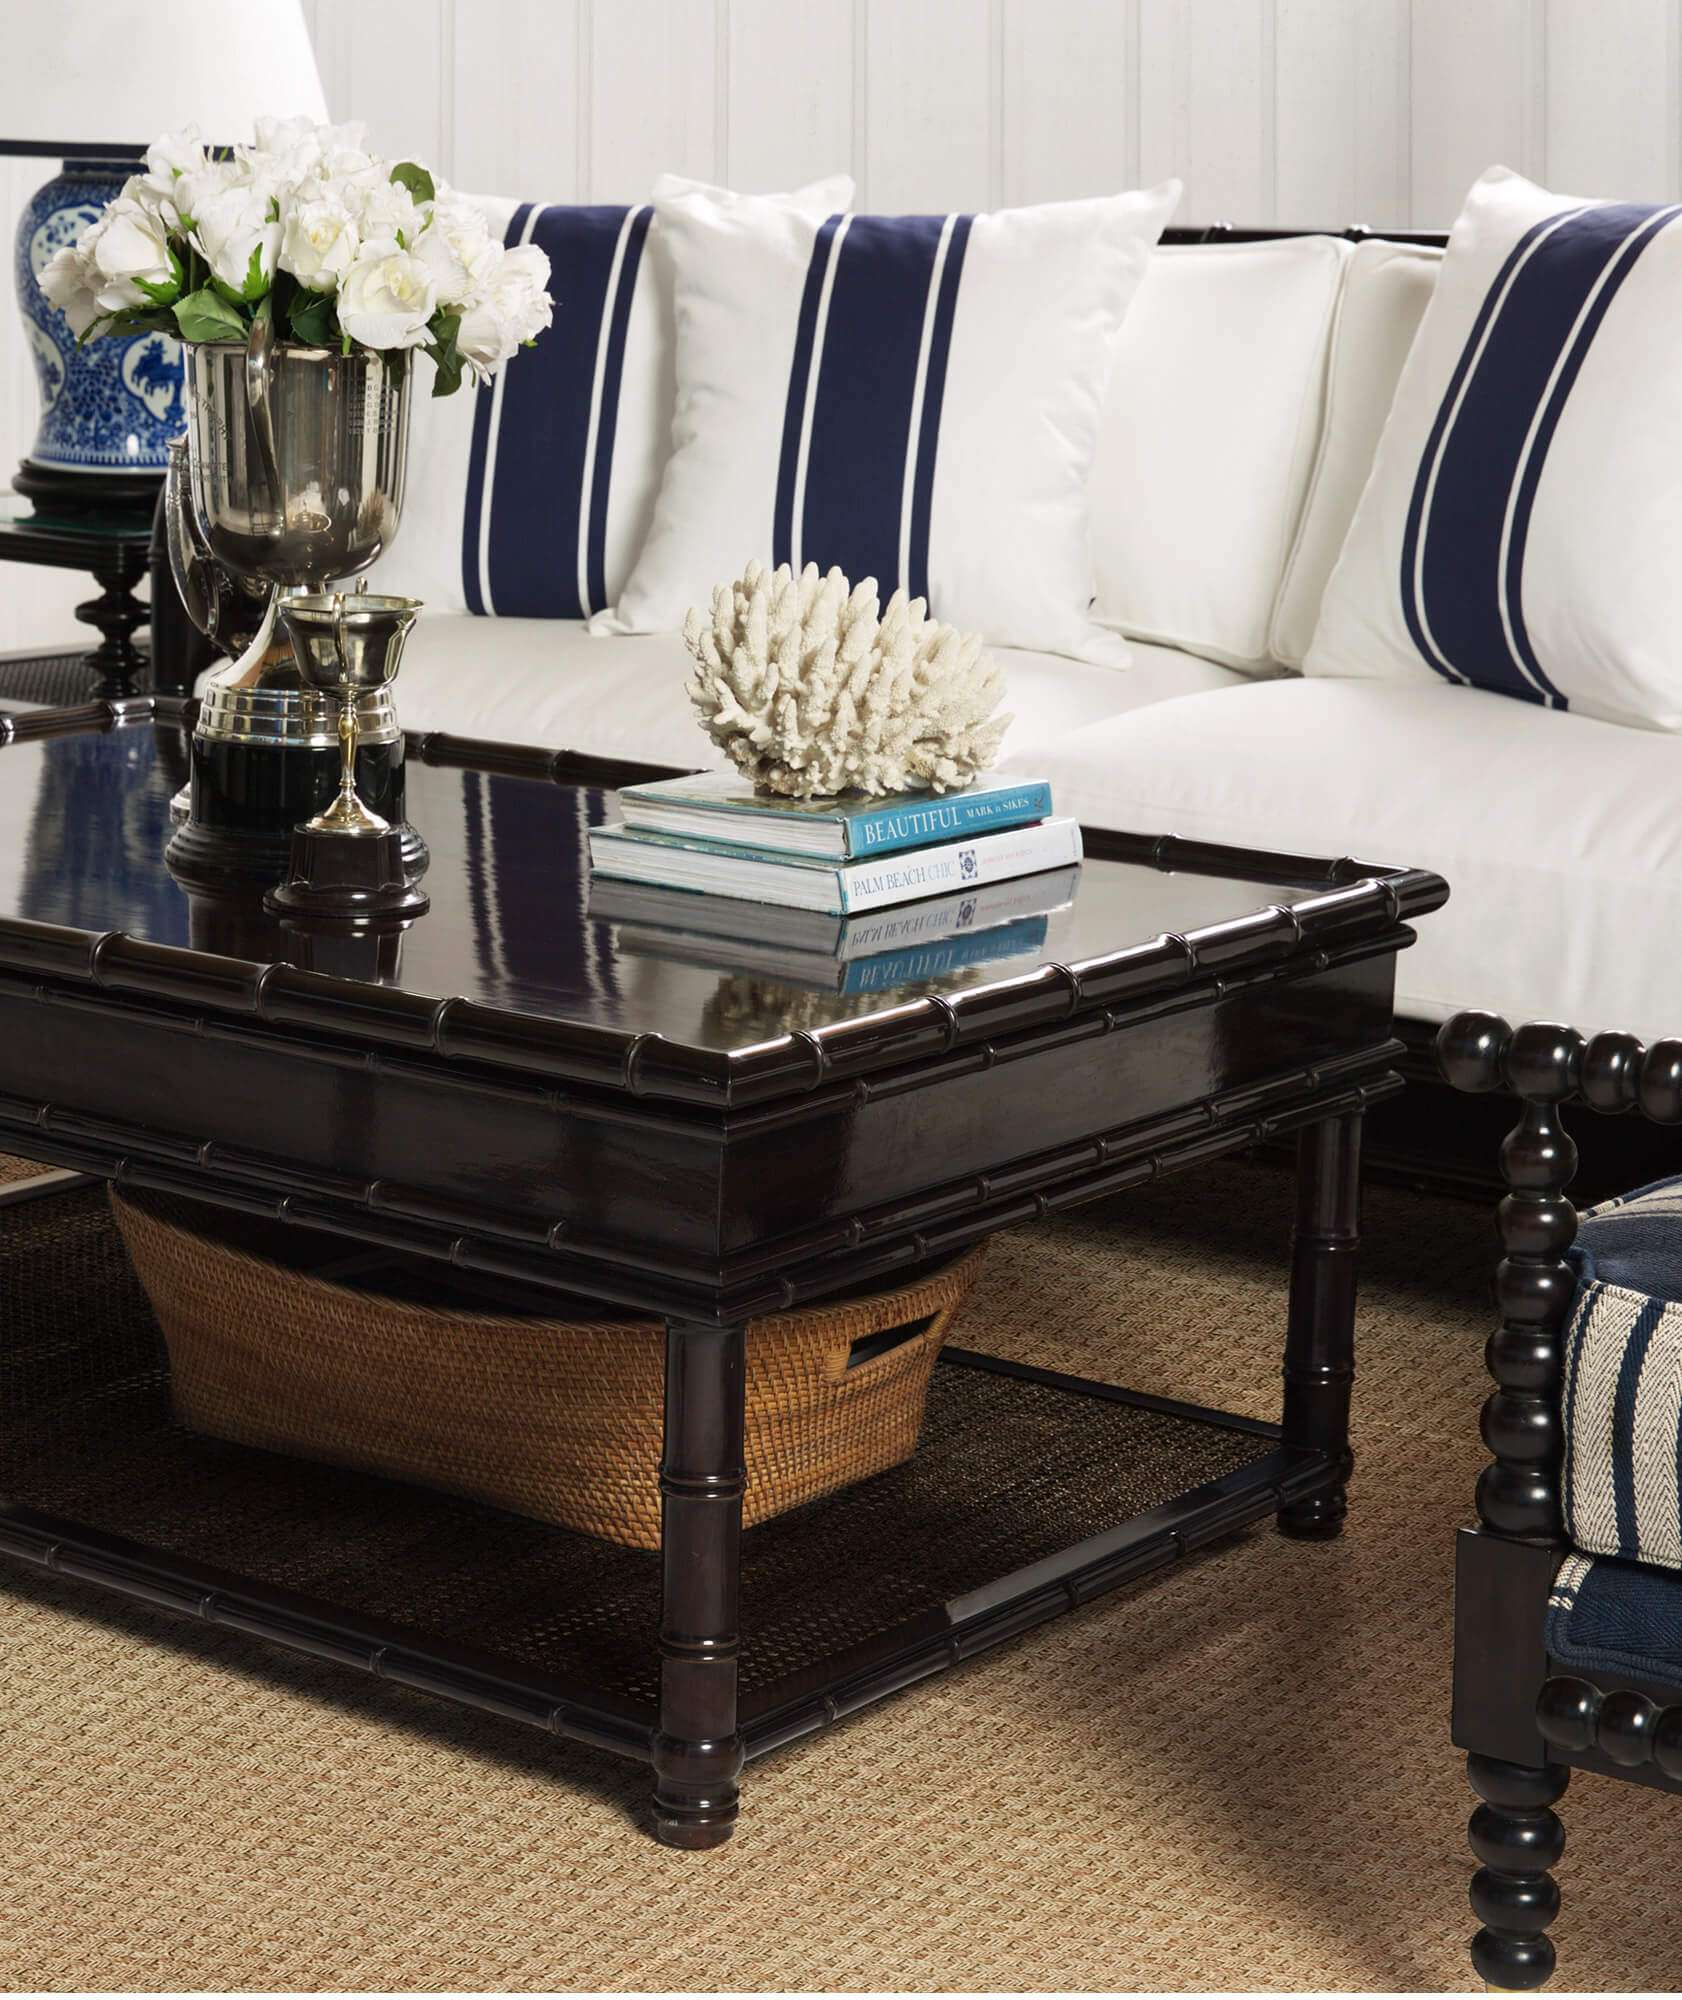 CAPE COLONY SOFA TABLE - STUART MEMBERY HOME COLLECTION